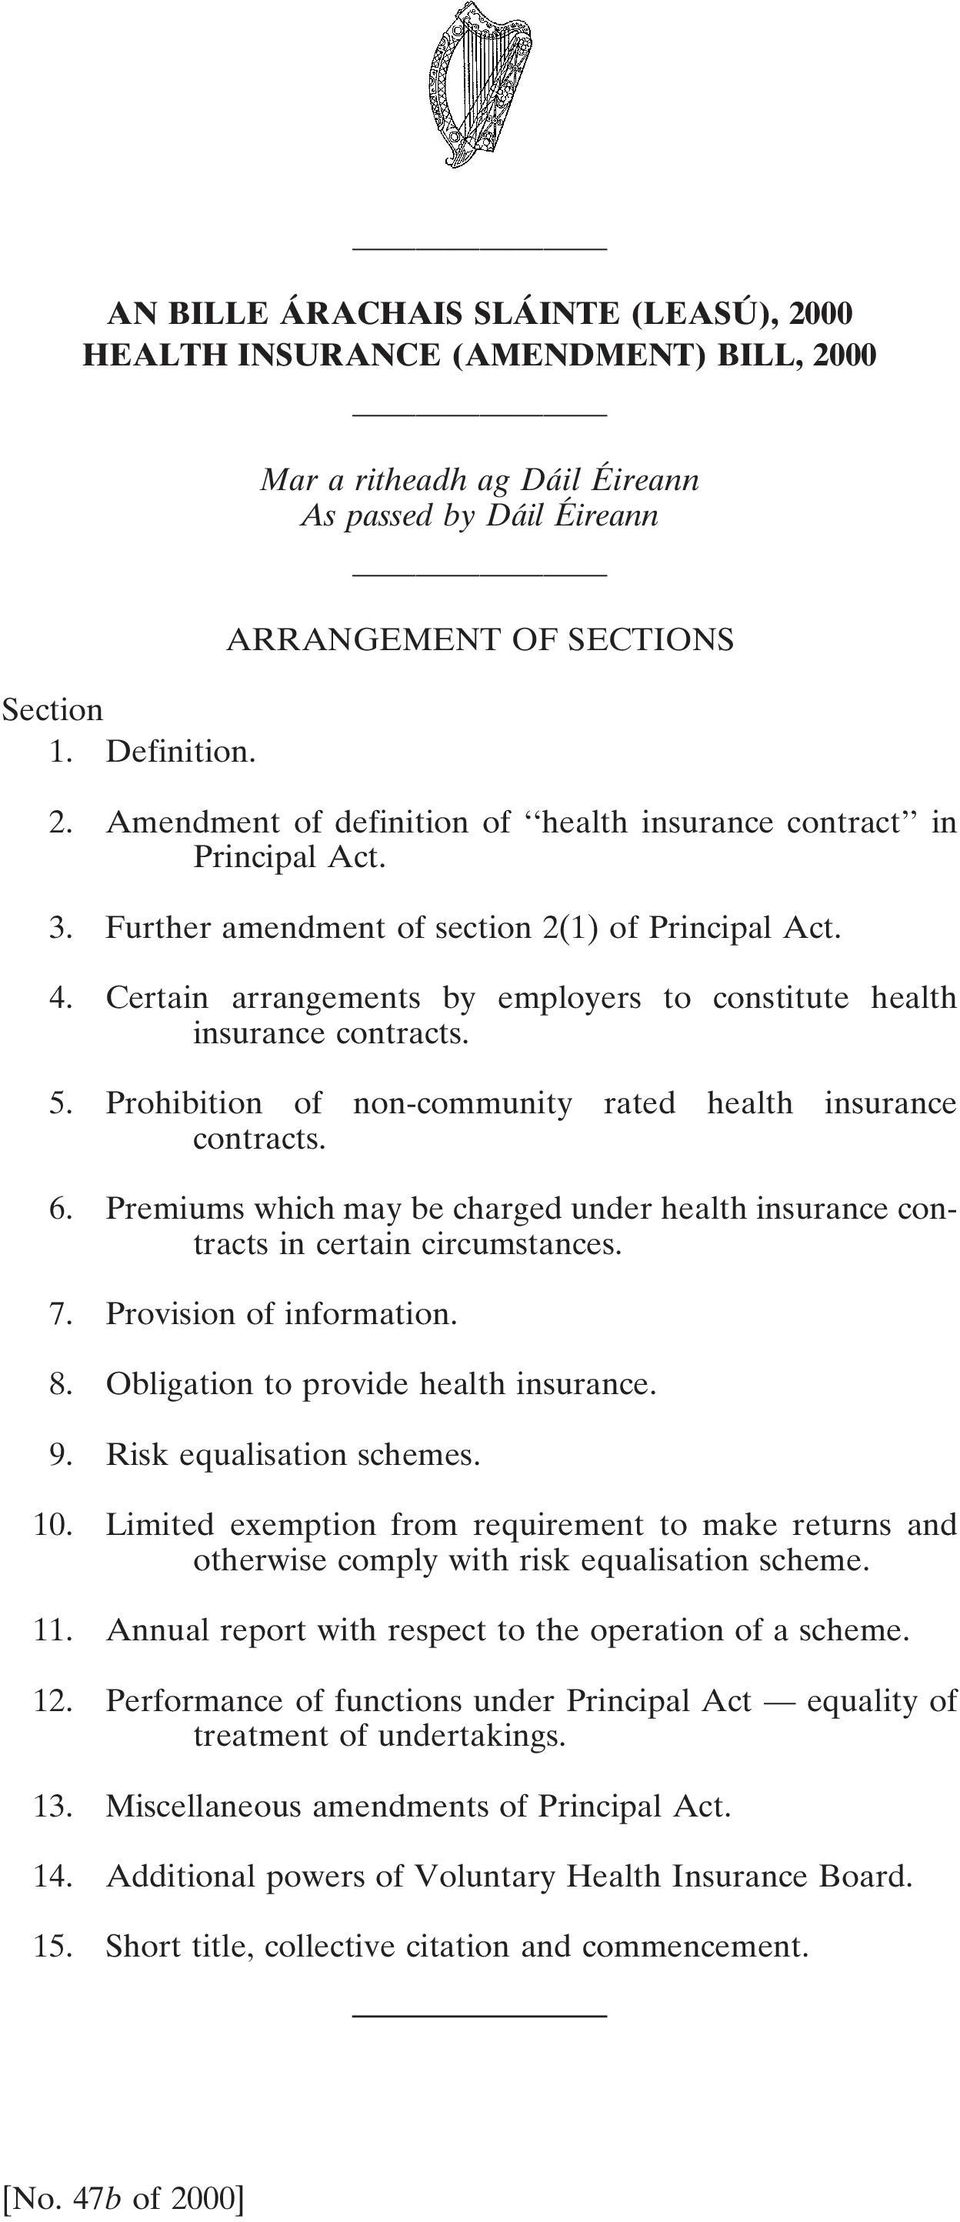 Certain arrangements by employers to constitute health insurance contracts. 5. Prohibition of non-community rated health insurance contracts. 6.